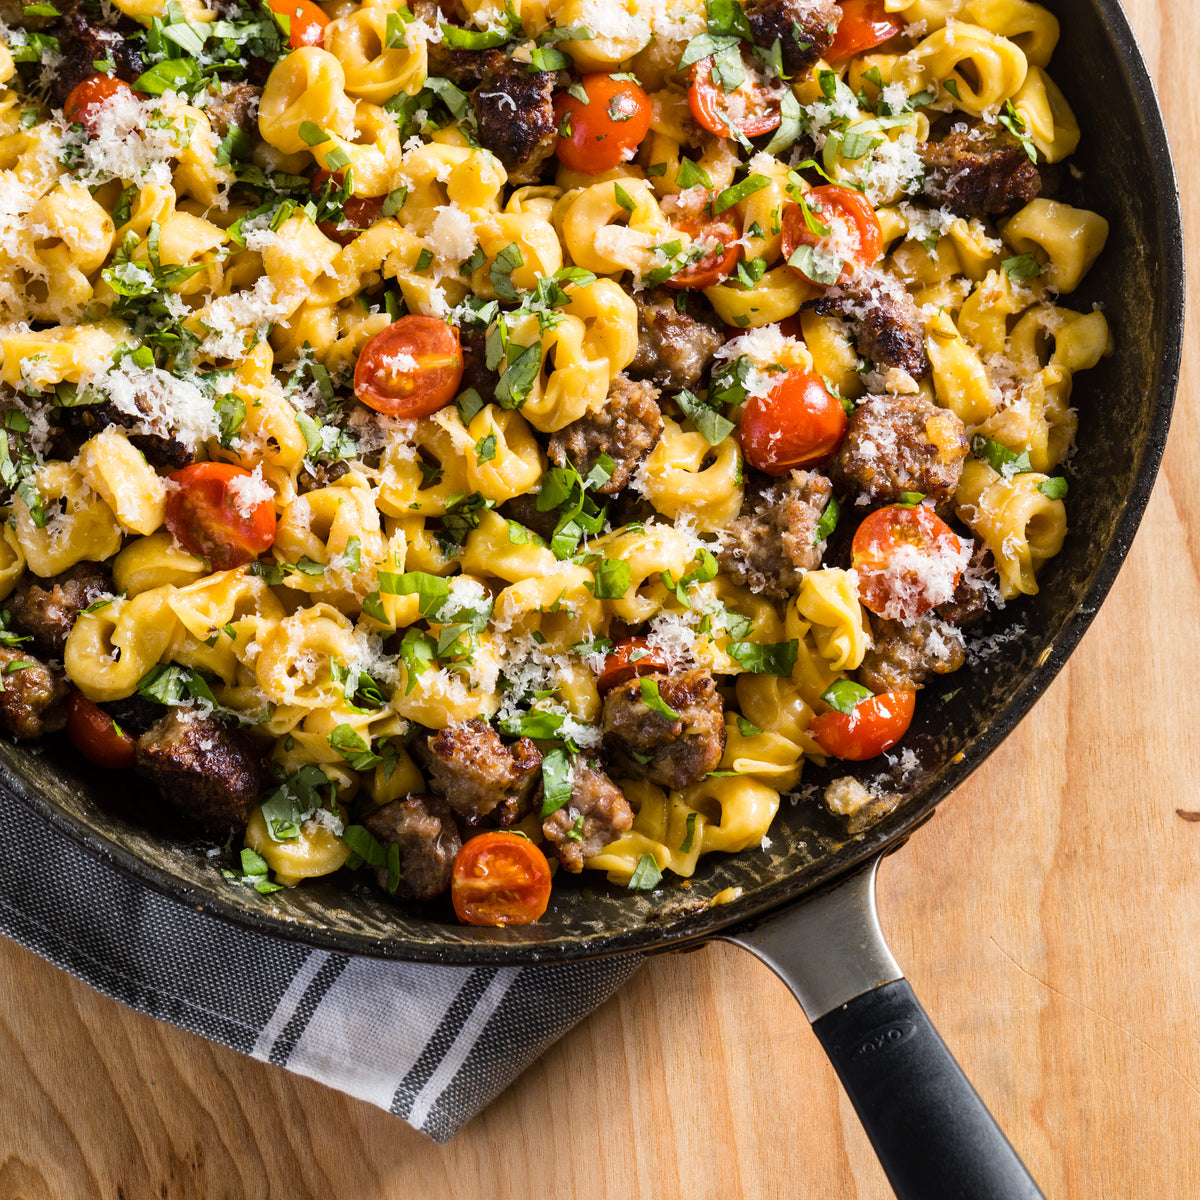 Skillet Tortellini with Sausage & Cherry Tomatoes